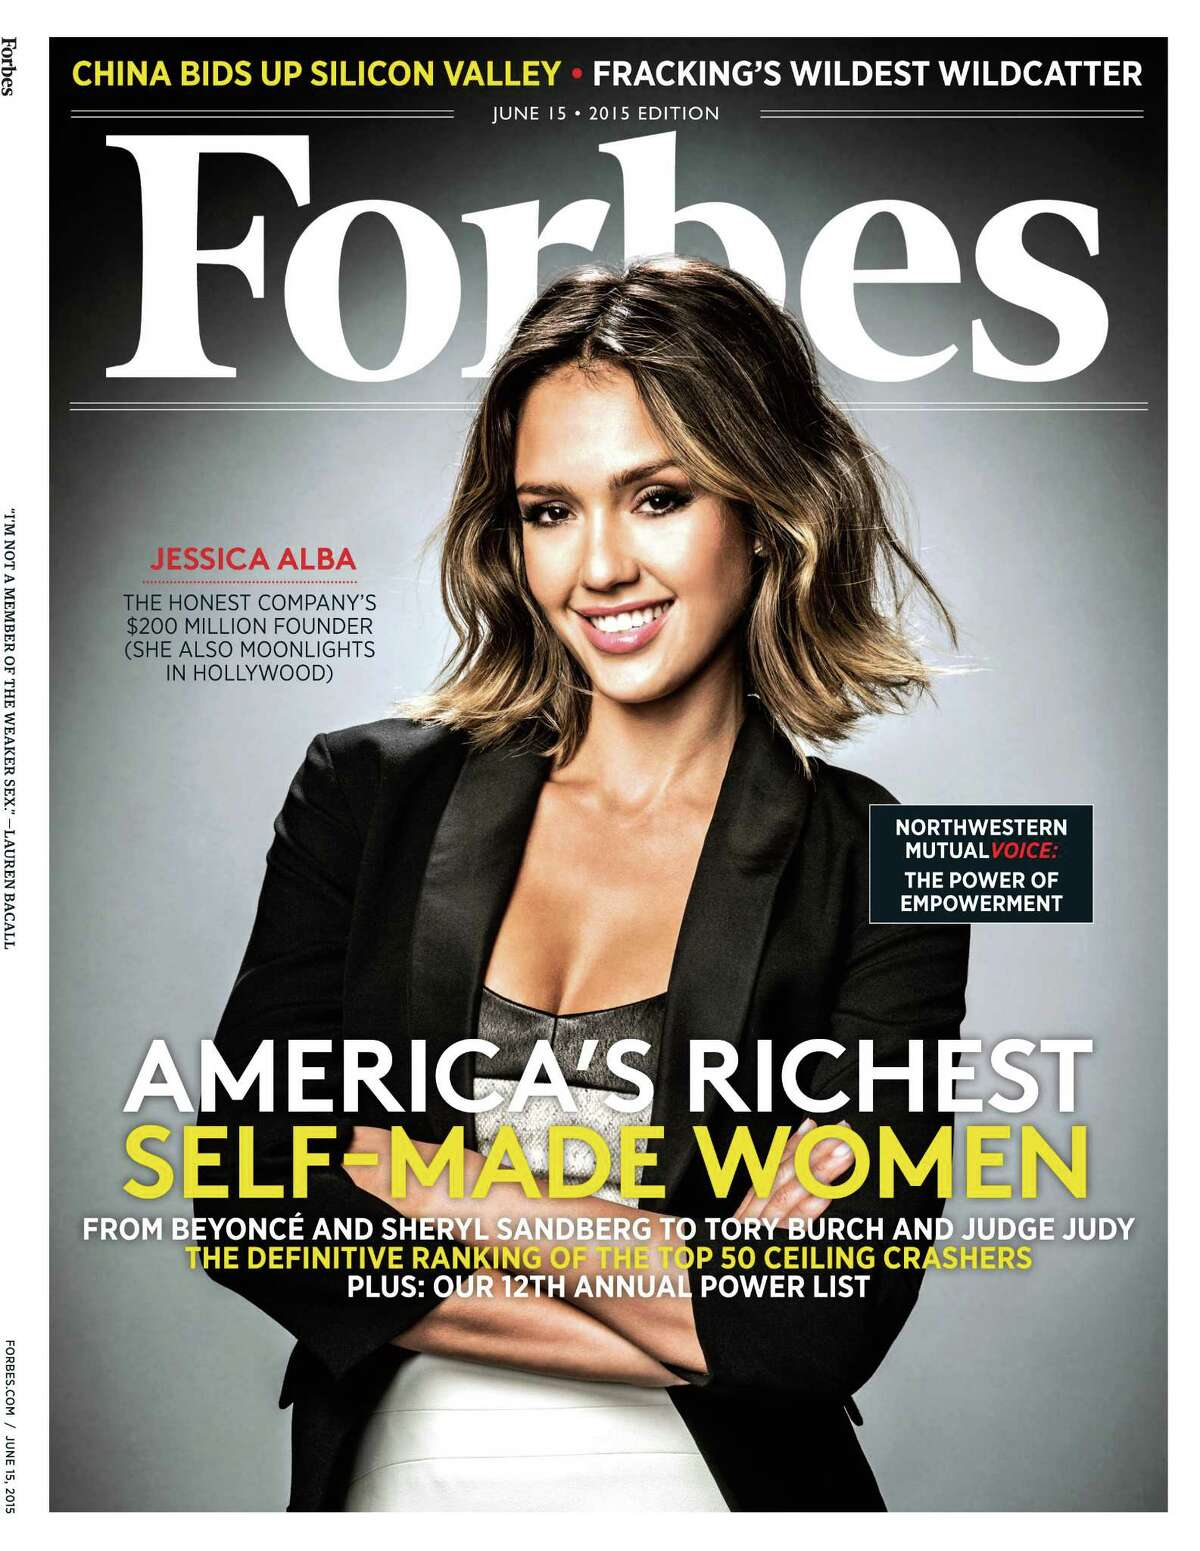 Blogs and articles at Forbes